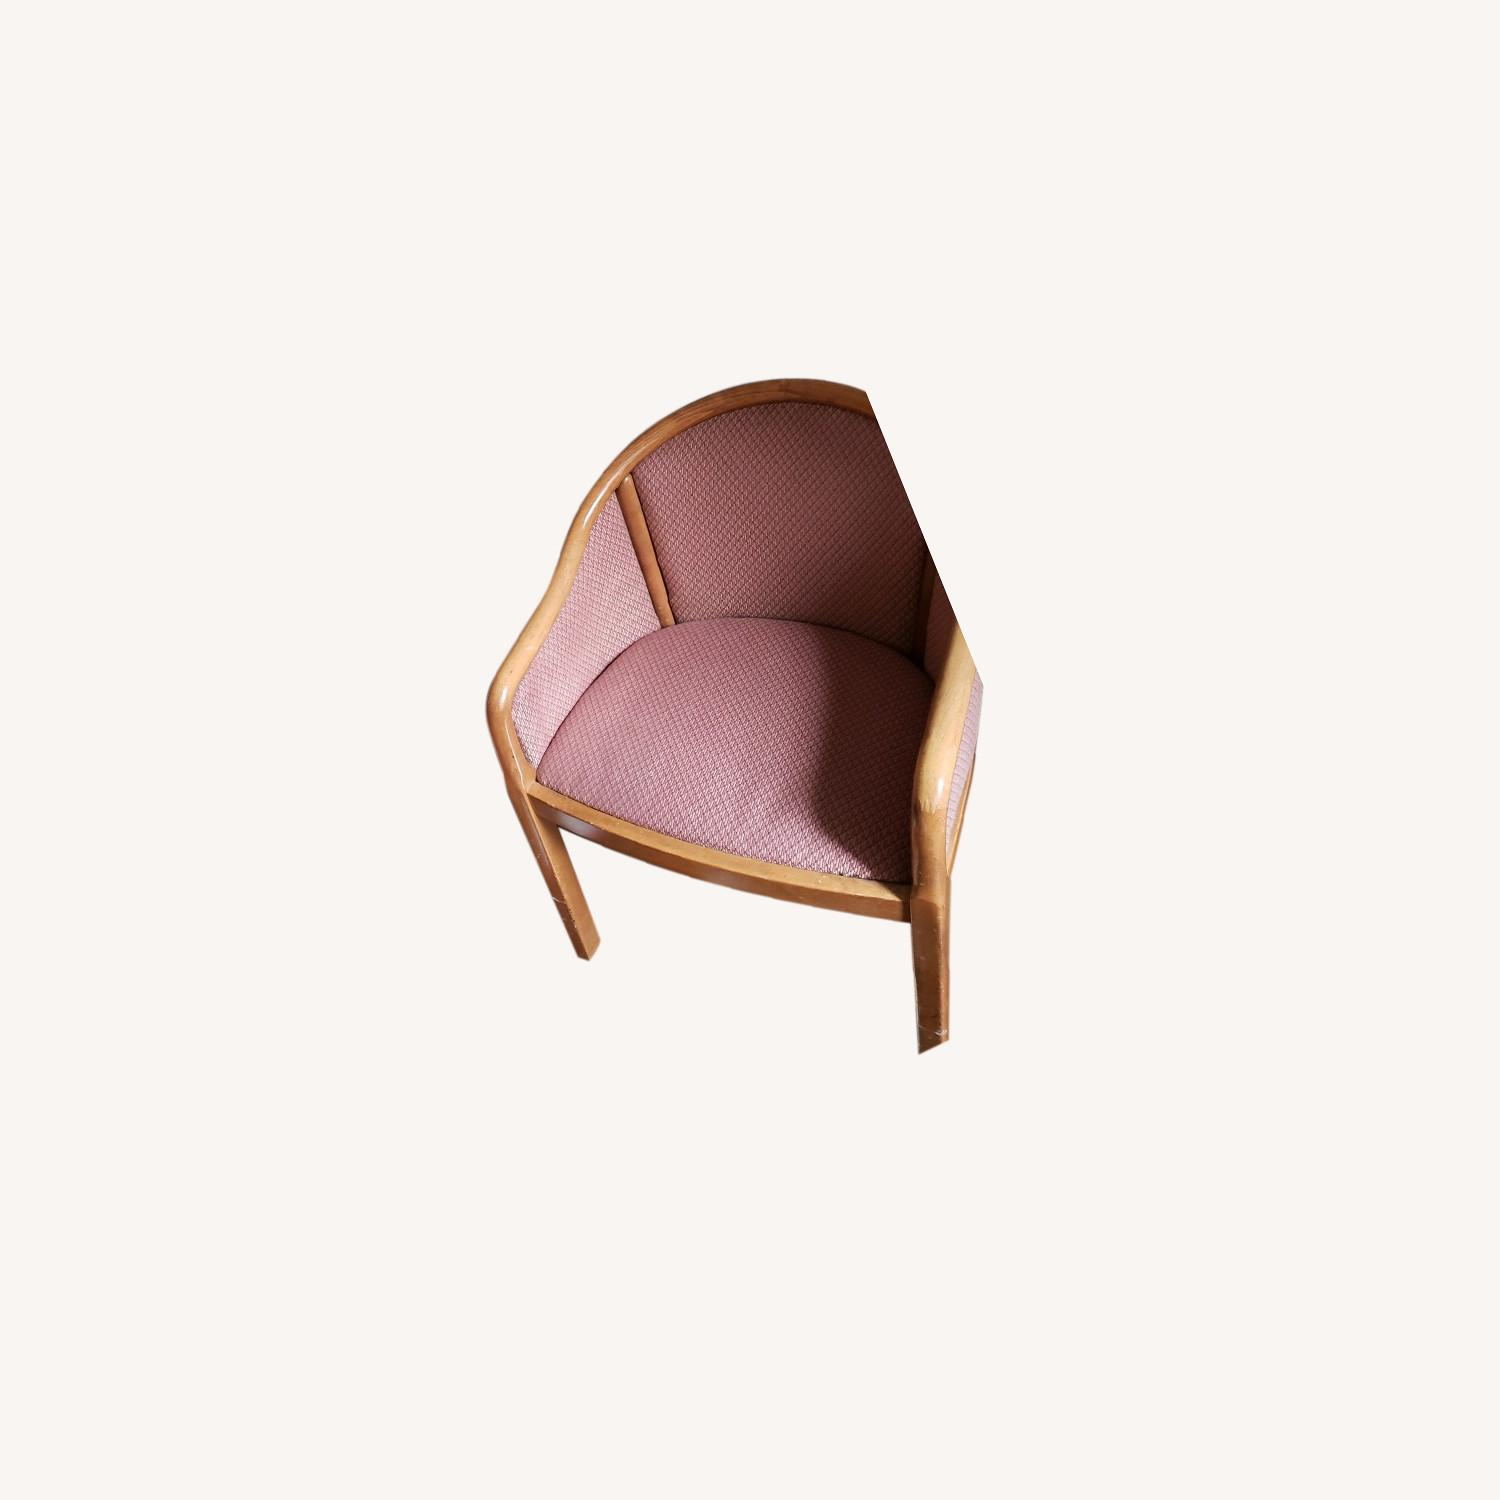 2 Matching Accent Chairs - image-0